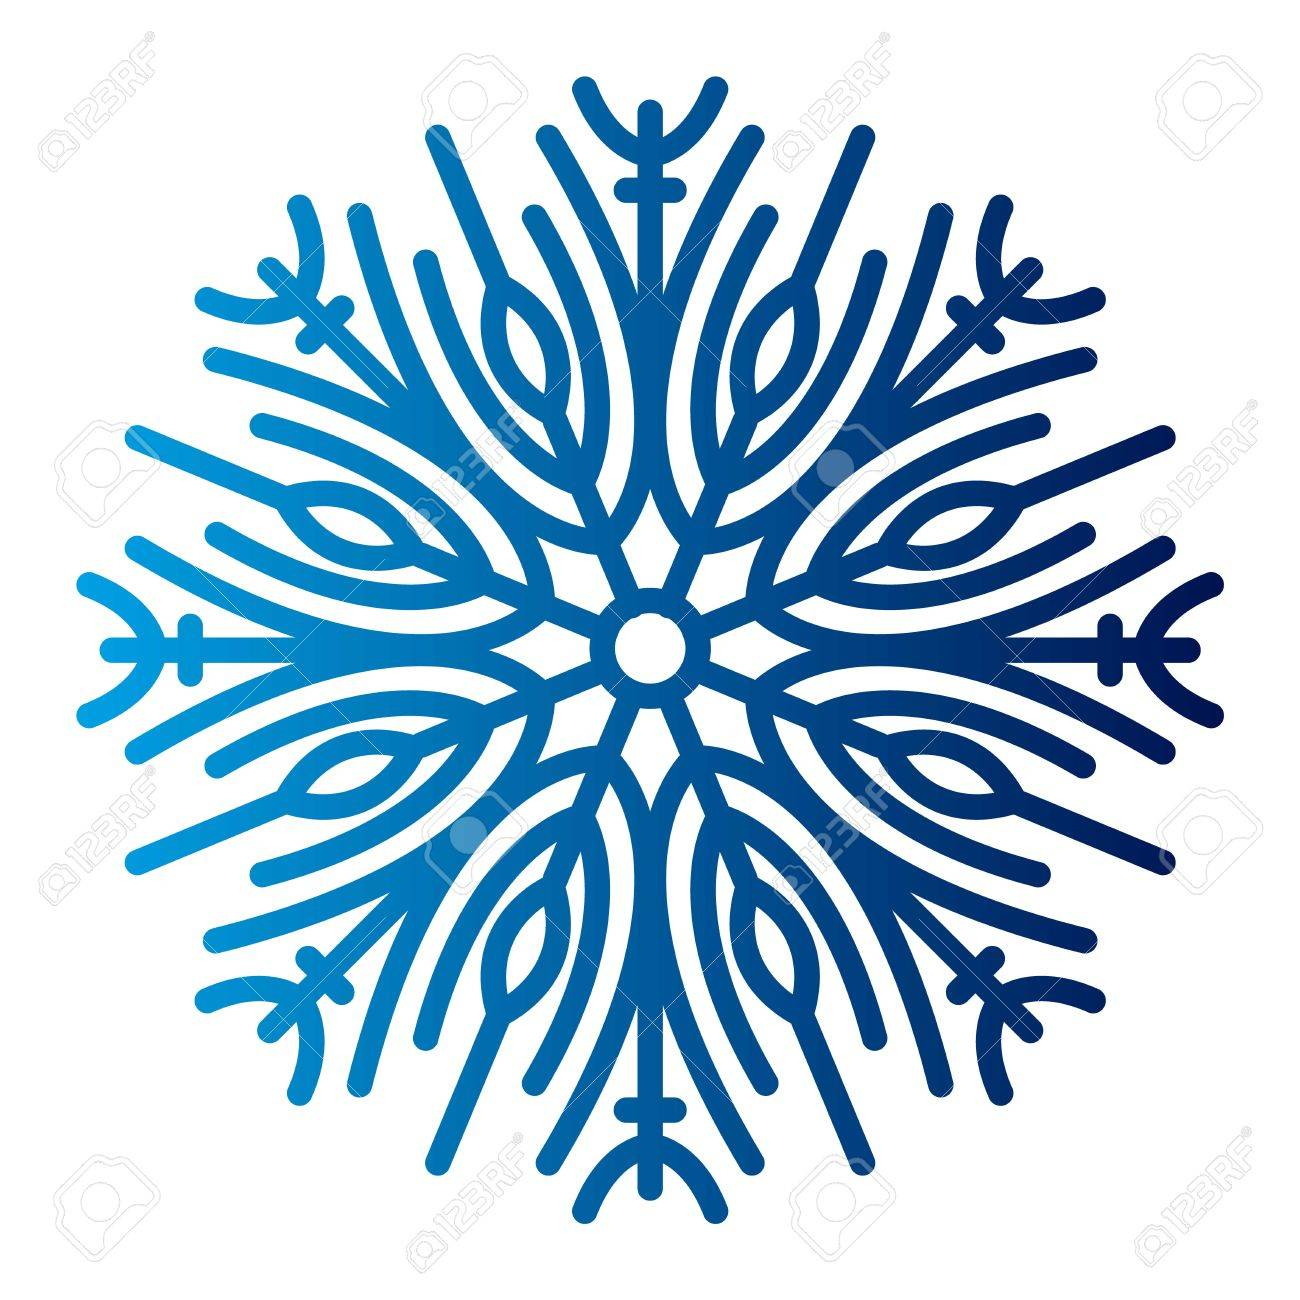 snowflake vector illustration and season nature winter sign symbol rh 123rf com snowflake vector art free snowflake background vector art free